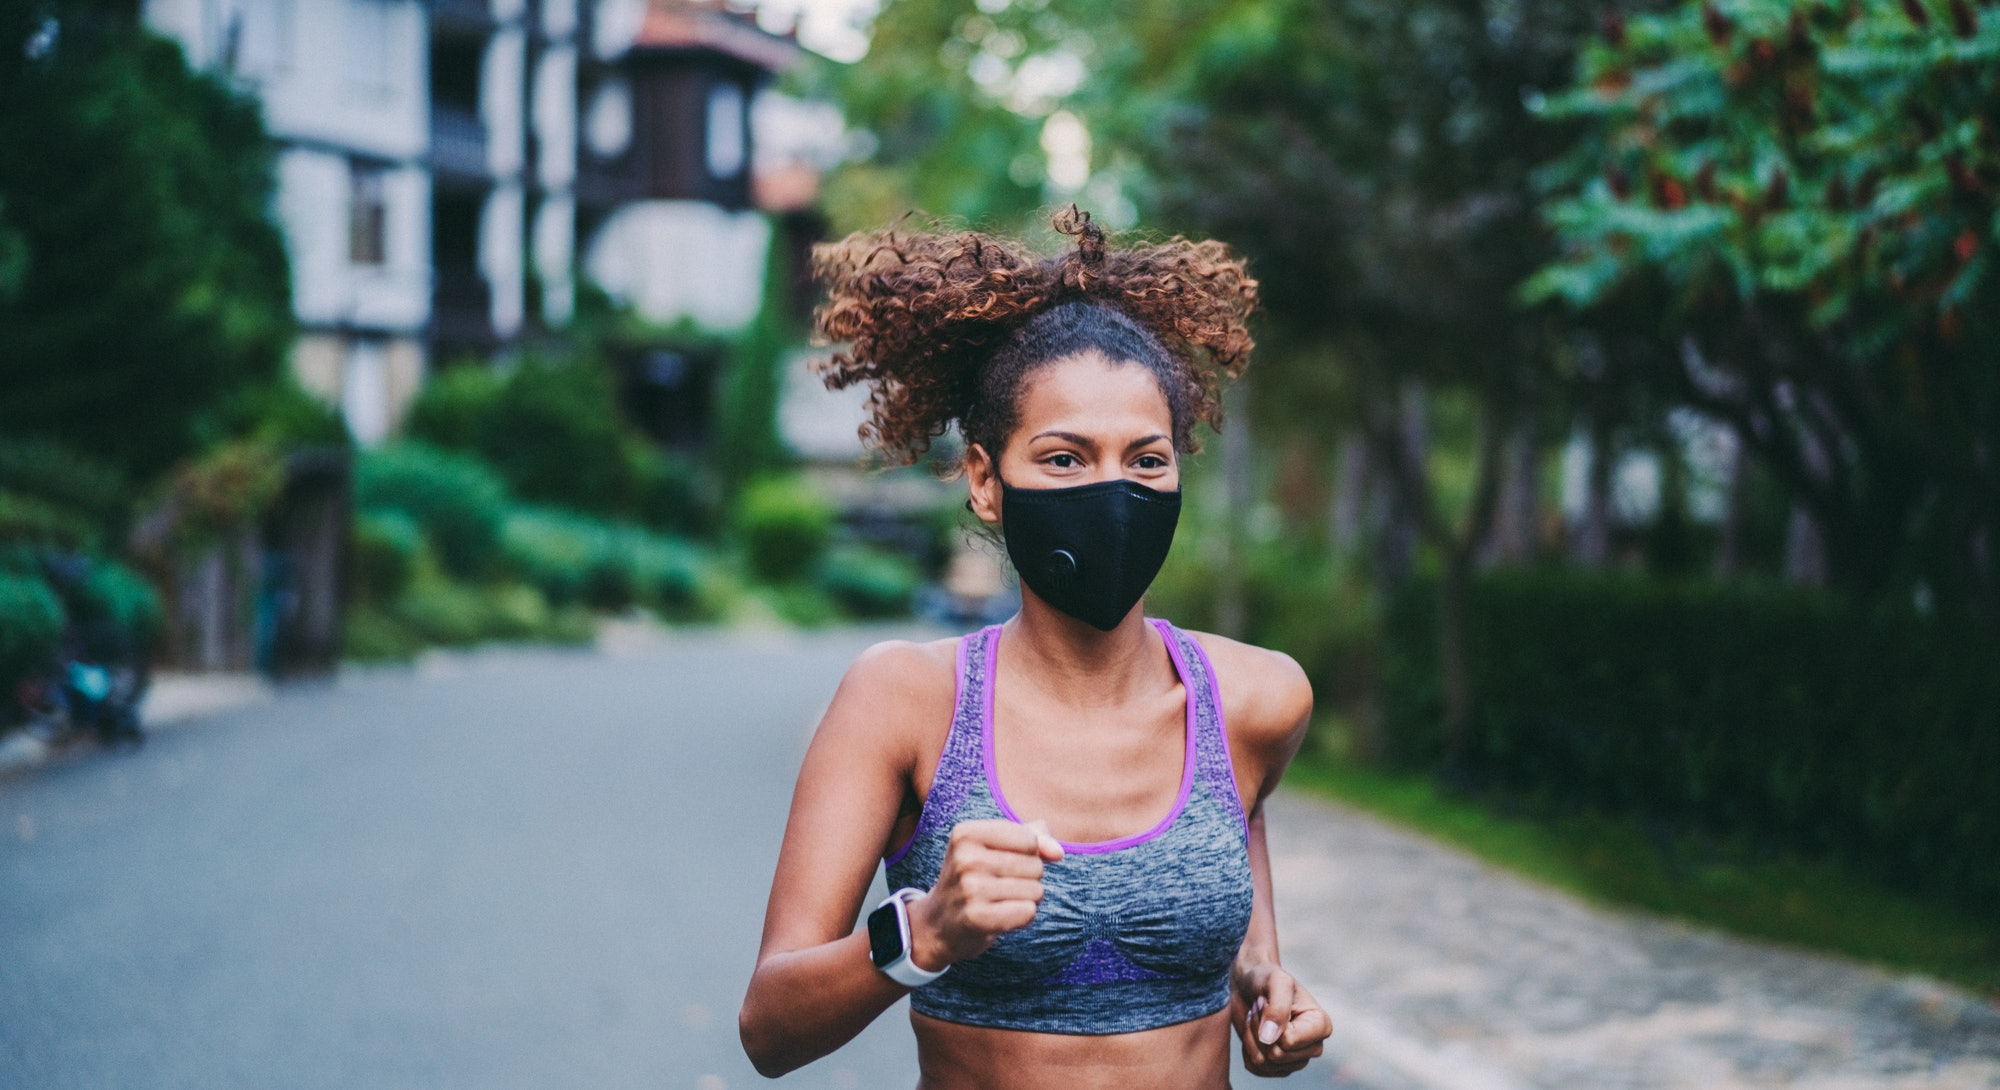 A person with natural hair and a sports bra wears a black mask while running outside. Your run doesn't have to get boring, even if you jog every day.